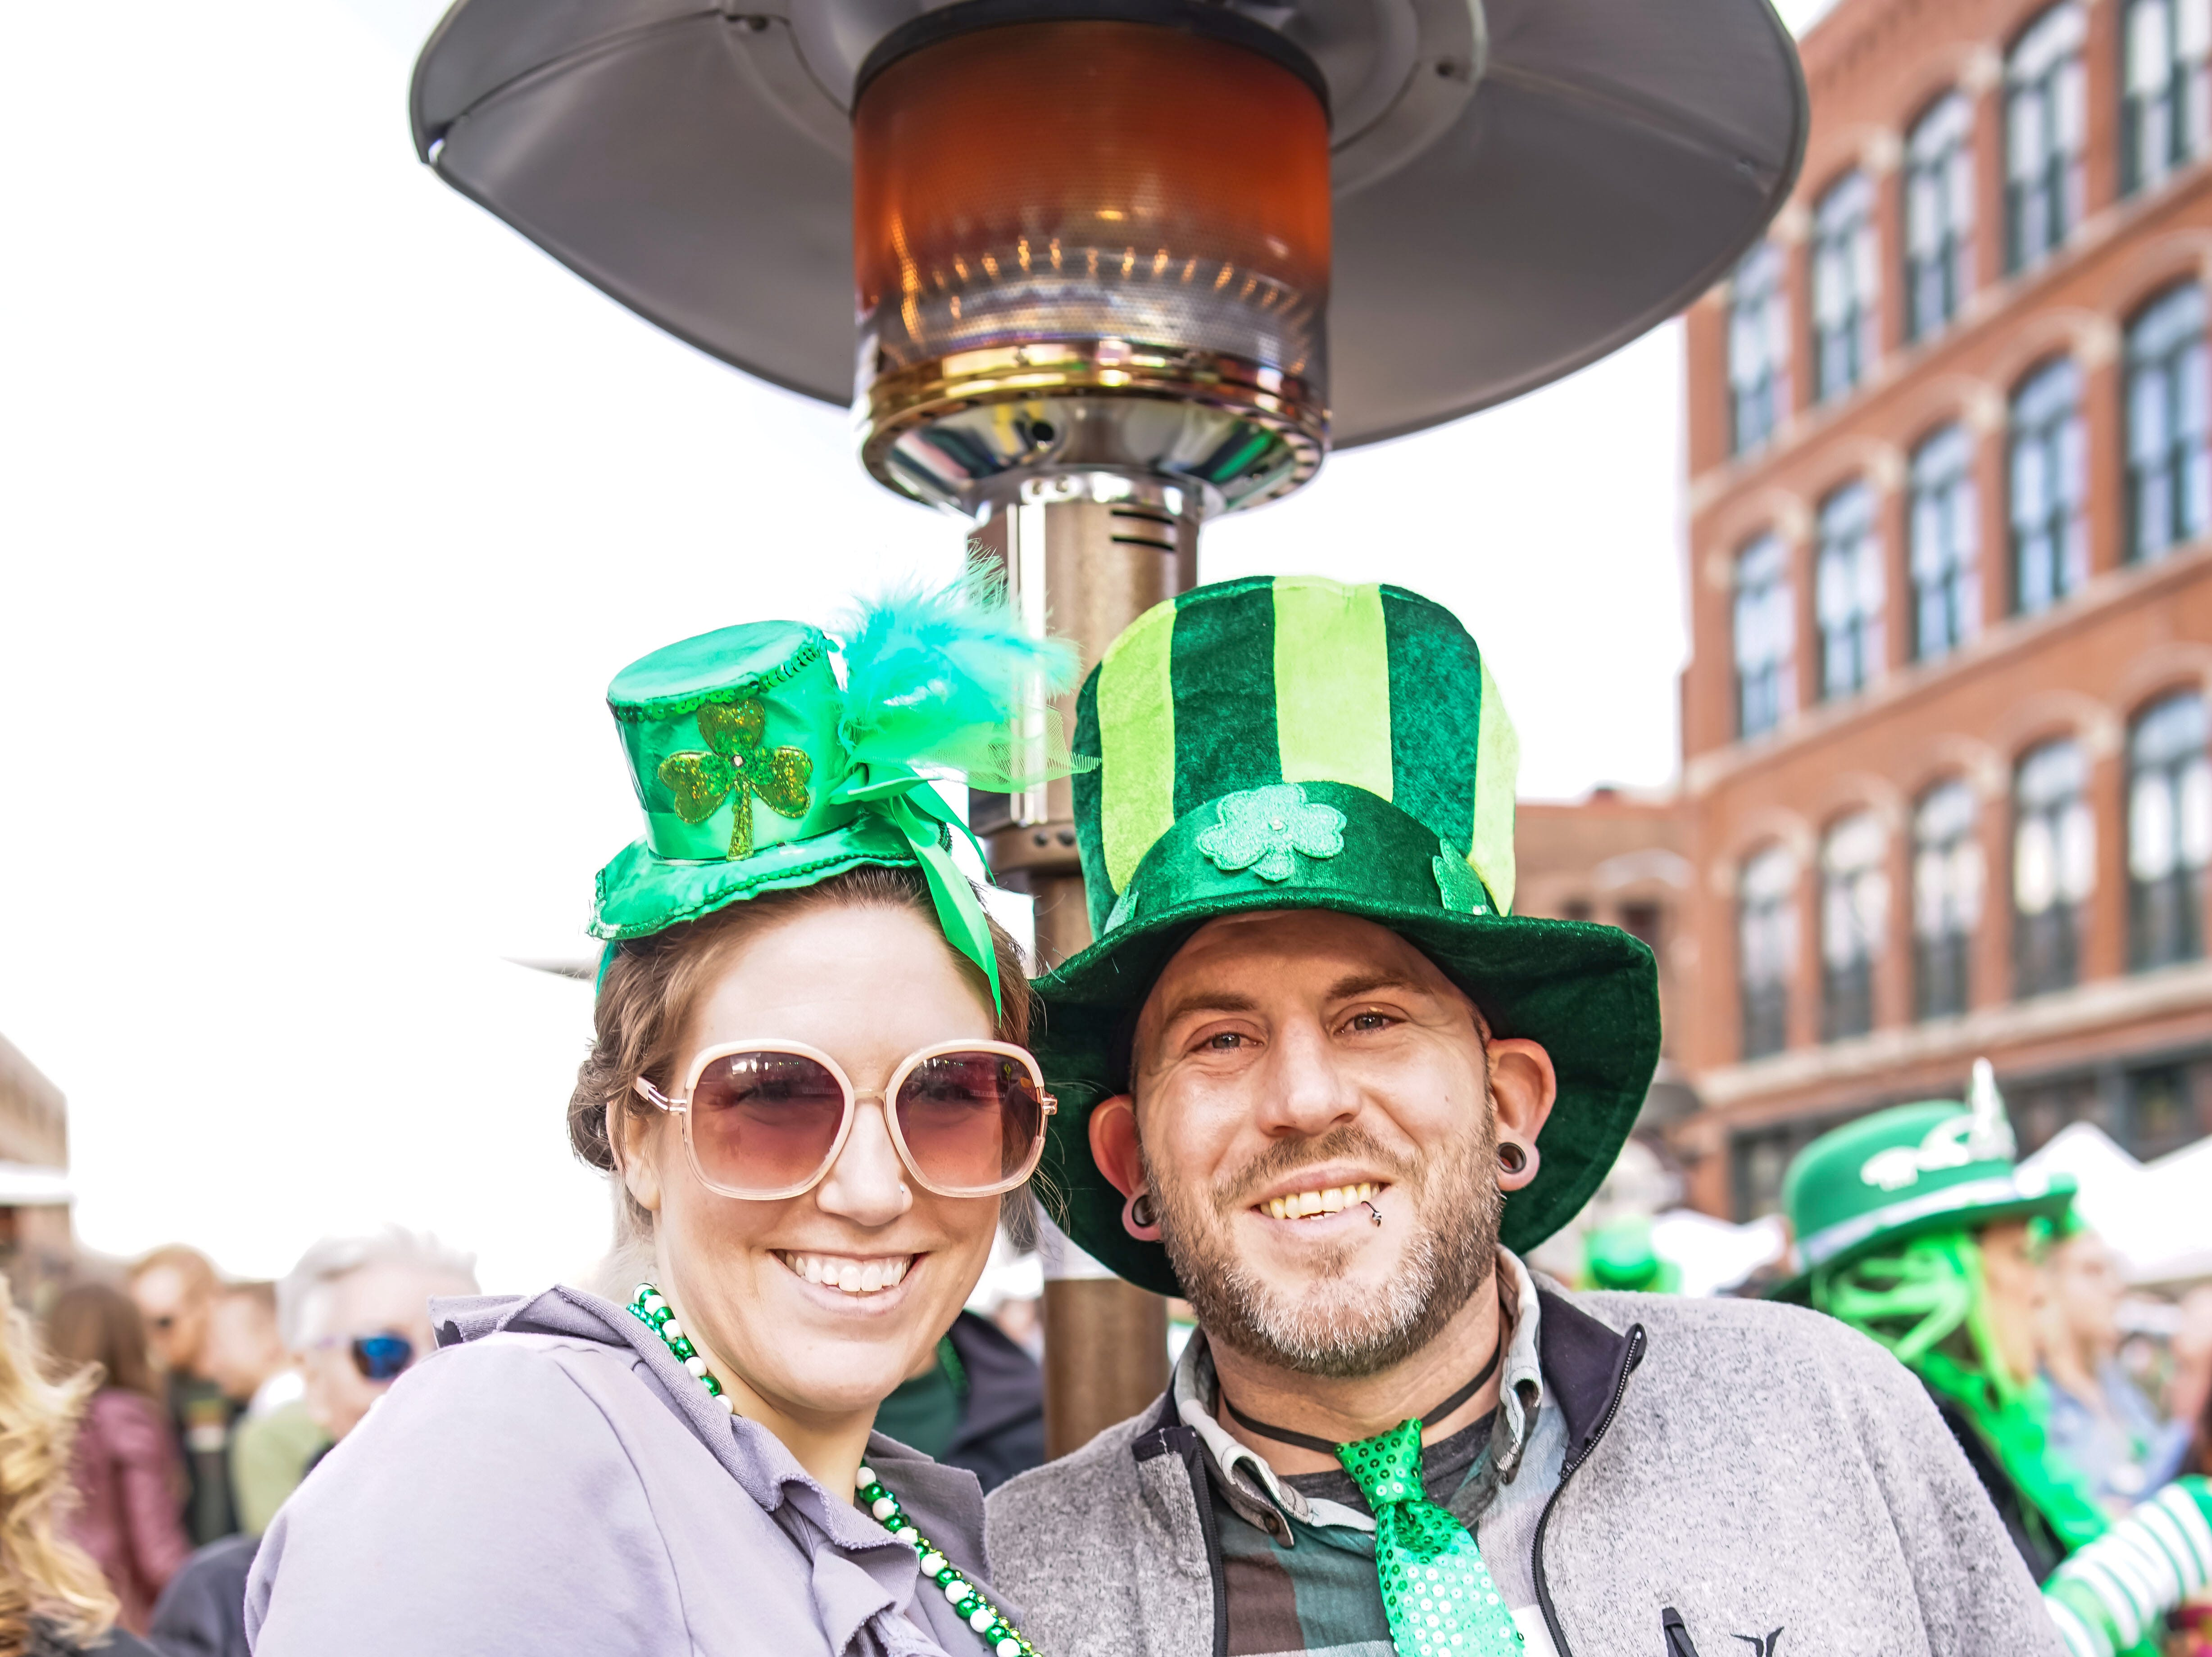 Victoria Oaks, 28, and Ryan Oaks, 36, both of Des Moines, having a fun time, Saturday, March 16, 2019, at the Court Avenue Block Party.